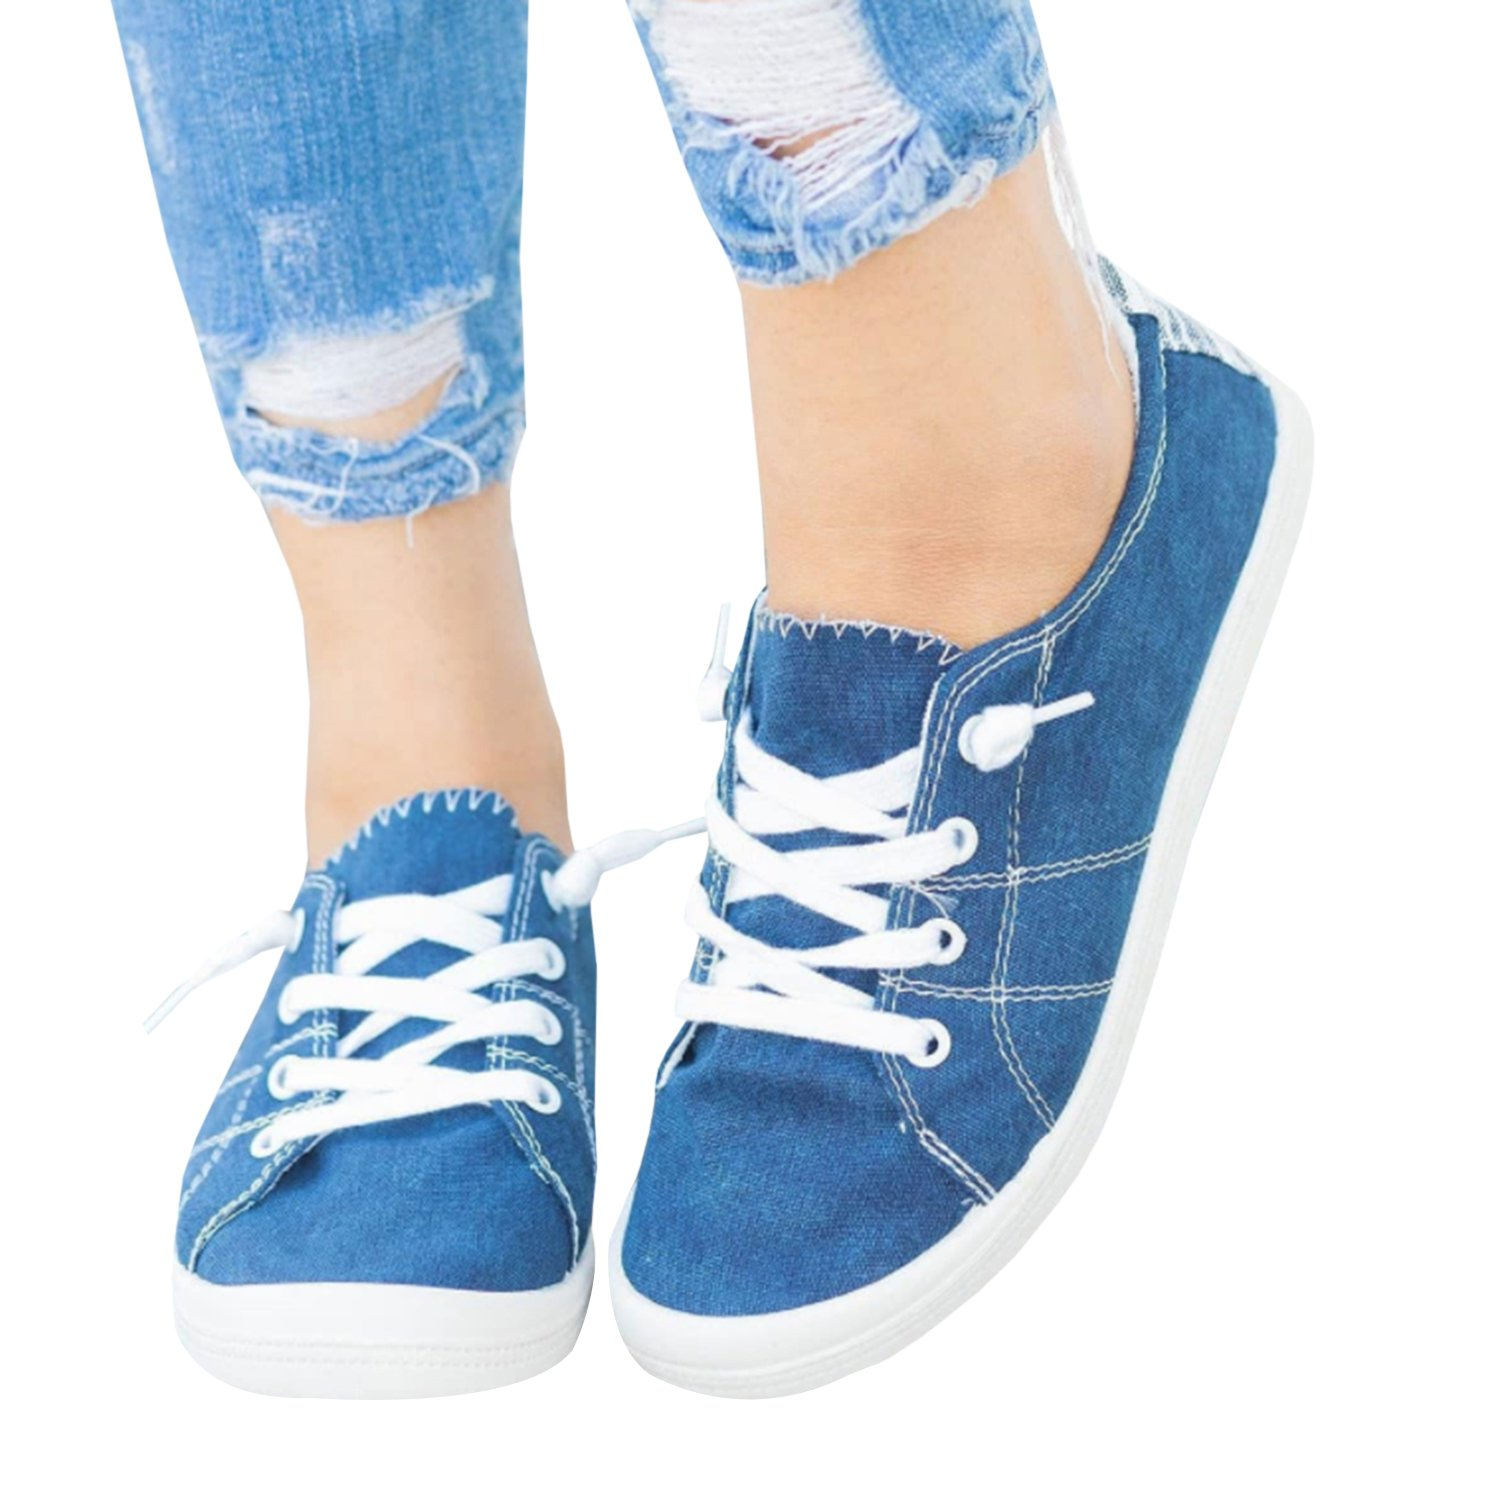 a842525a5d136 Womens Summer Canvas Sneakers Low Top Lace up Slip-On Flats Shoes